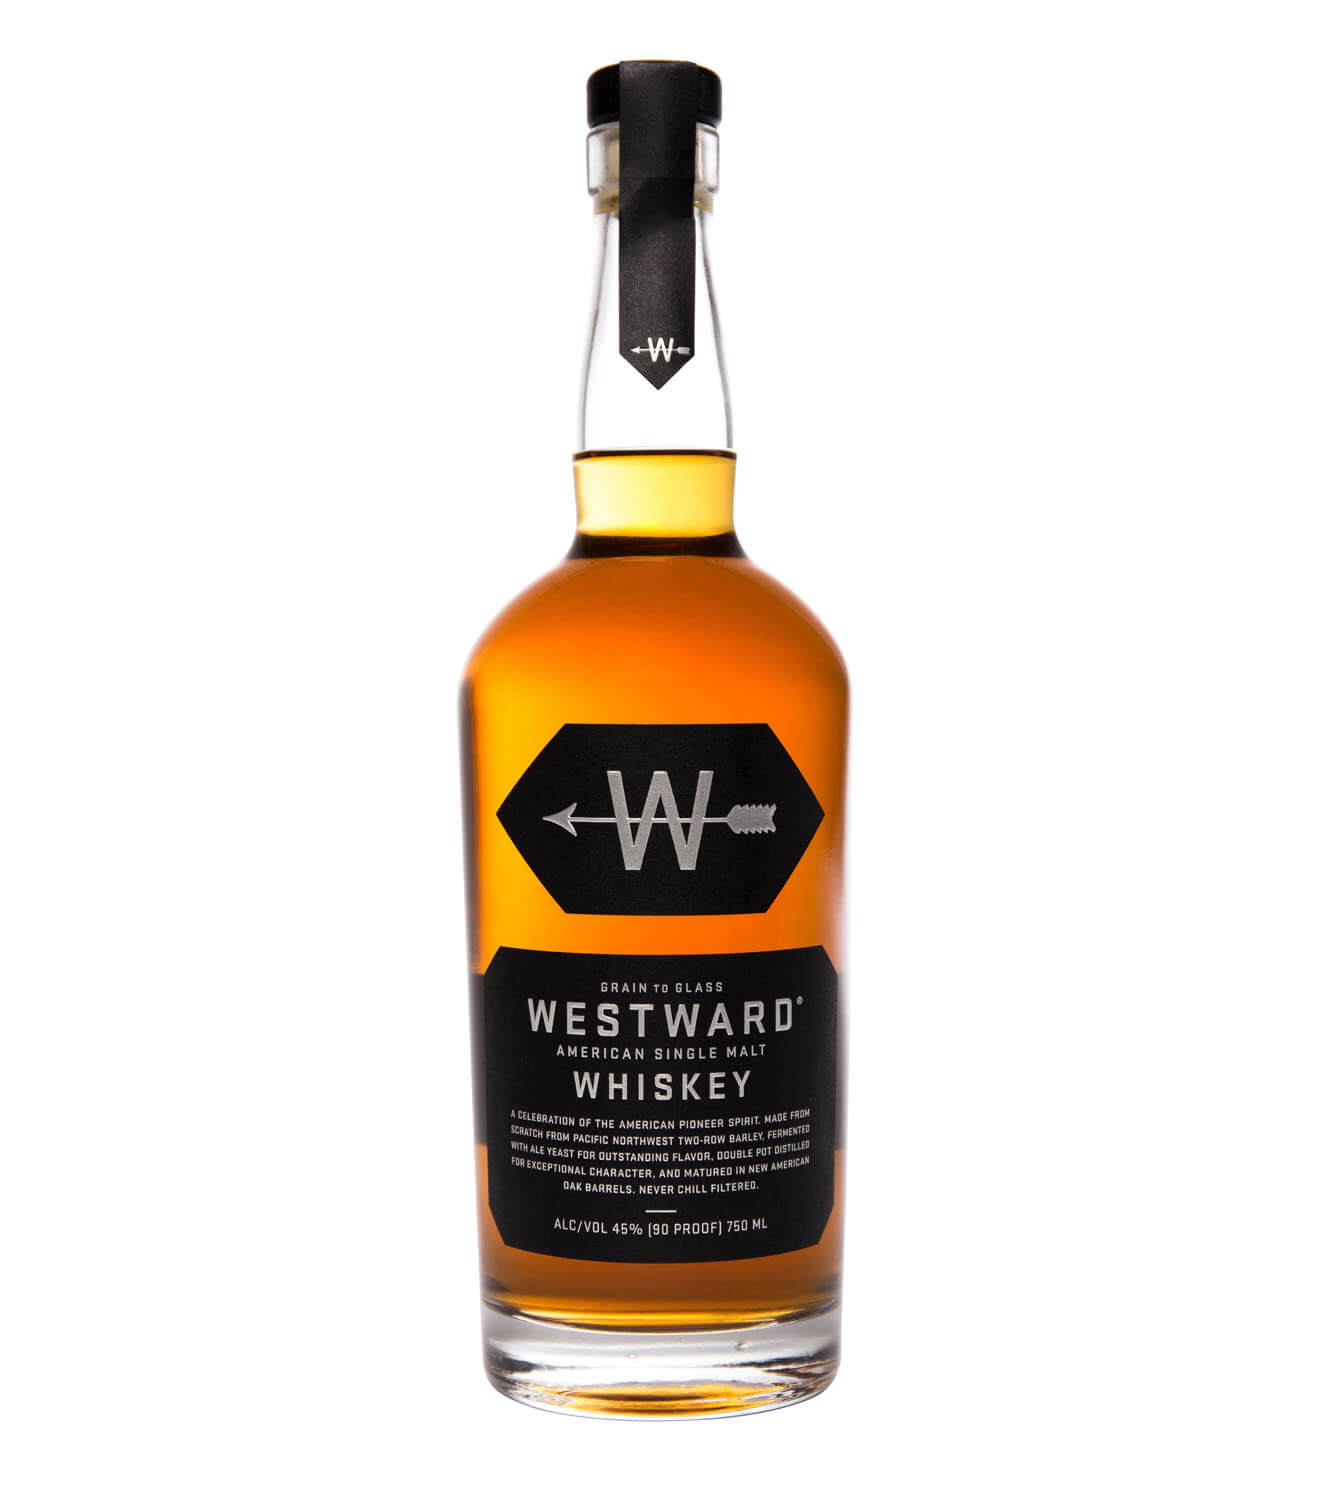 Westward Single Malt, bottle on white